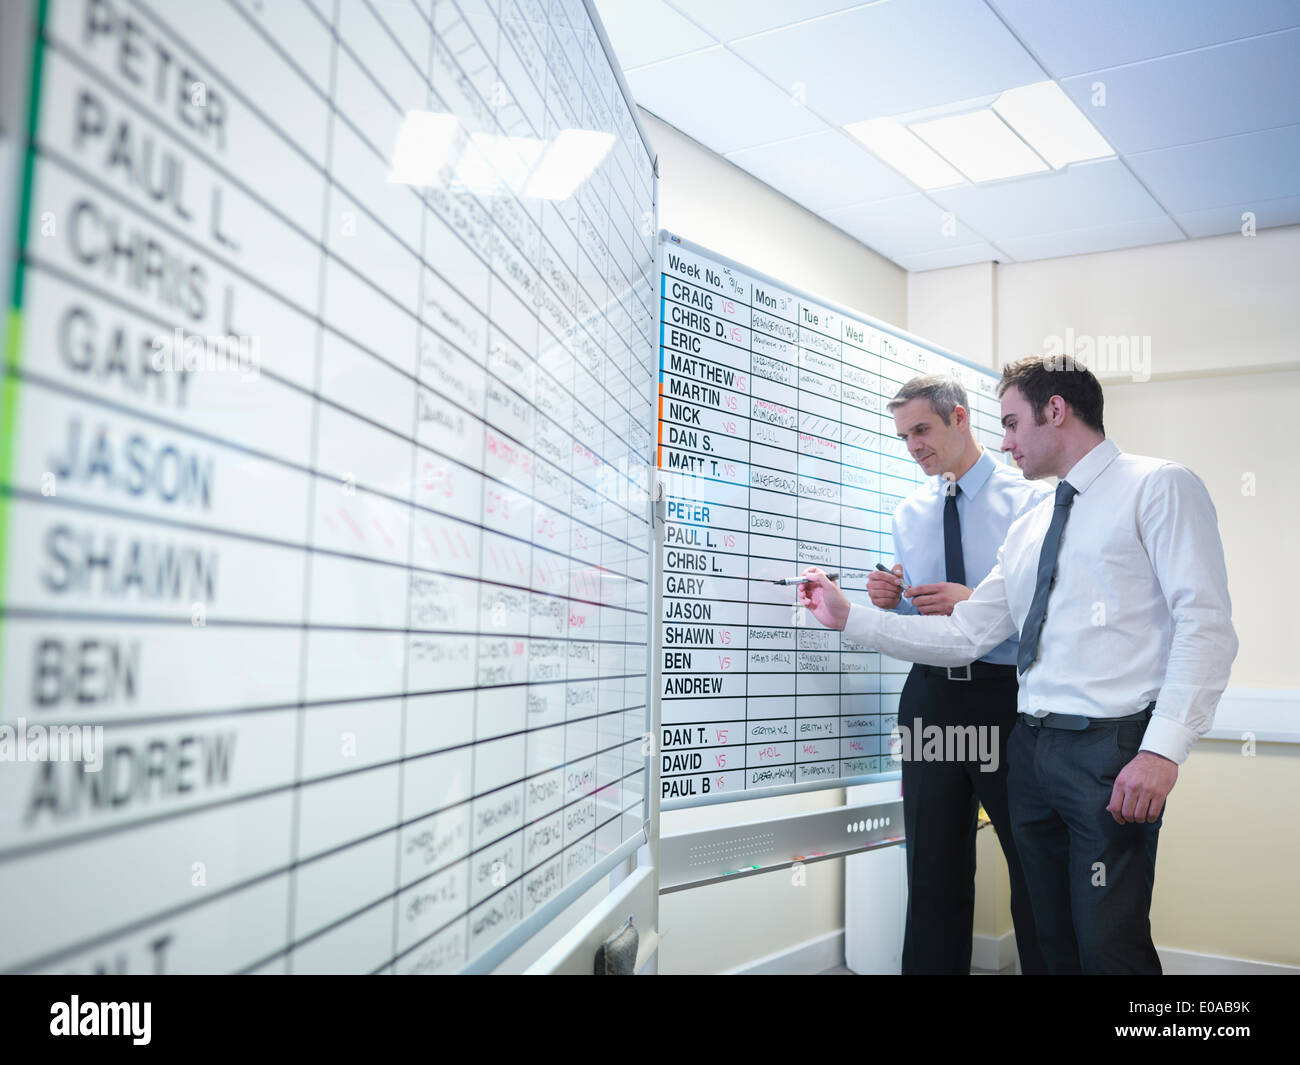 Managers writing notes on board in office - Stock Image